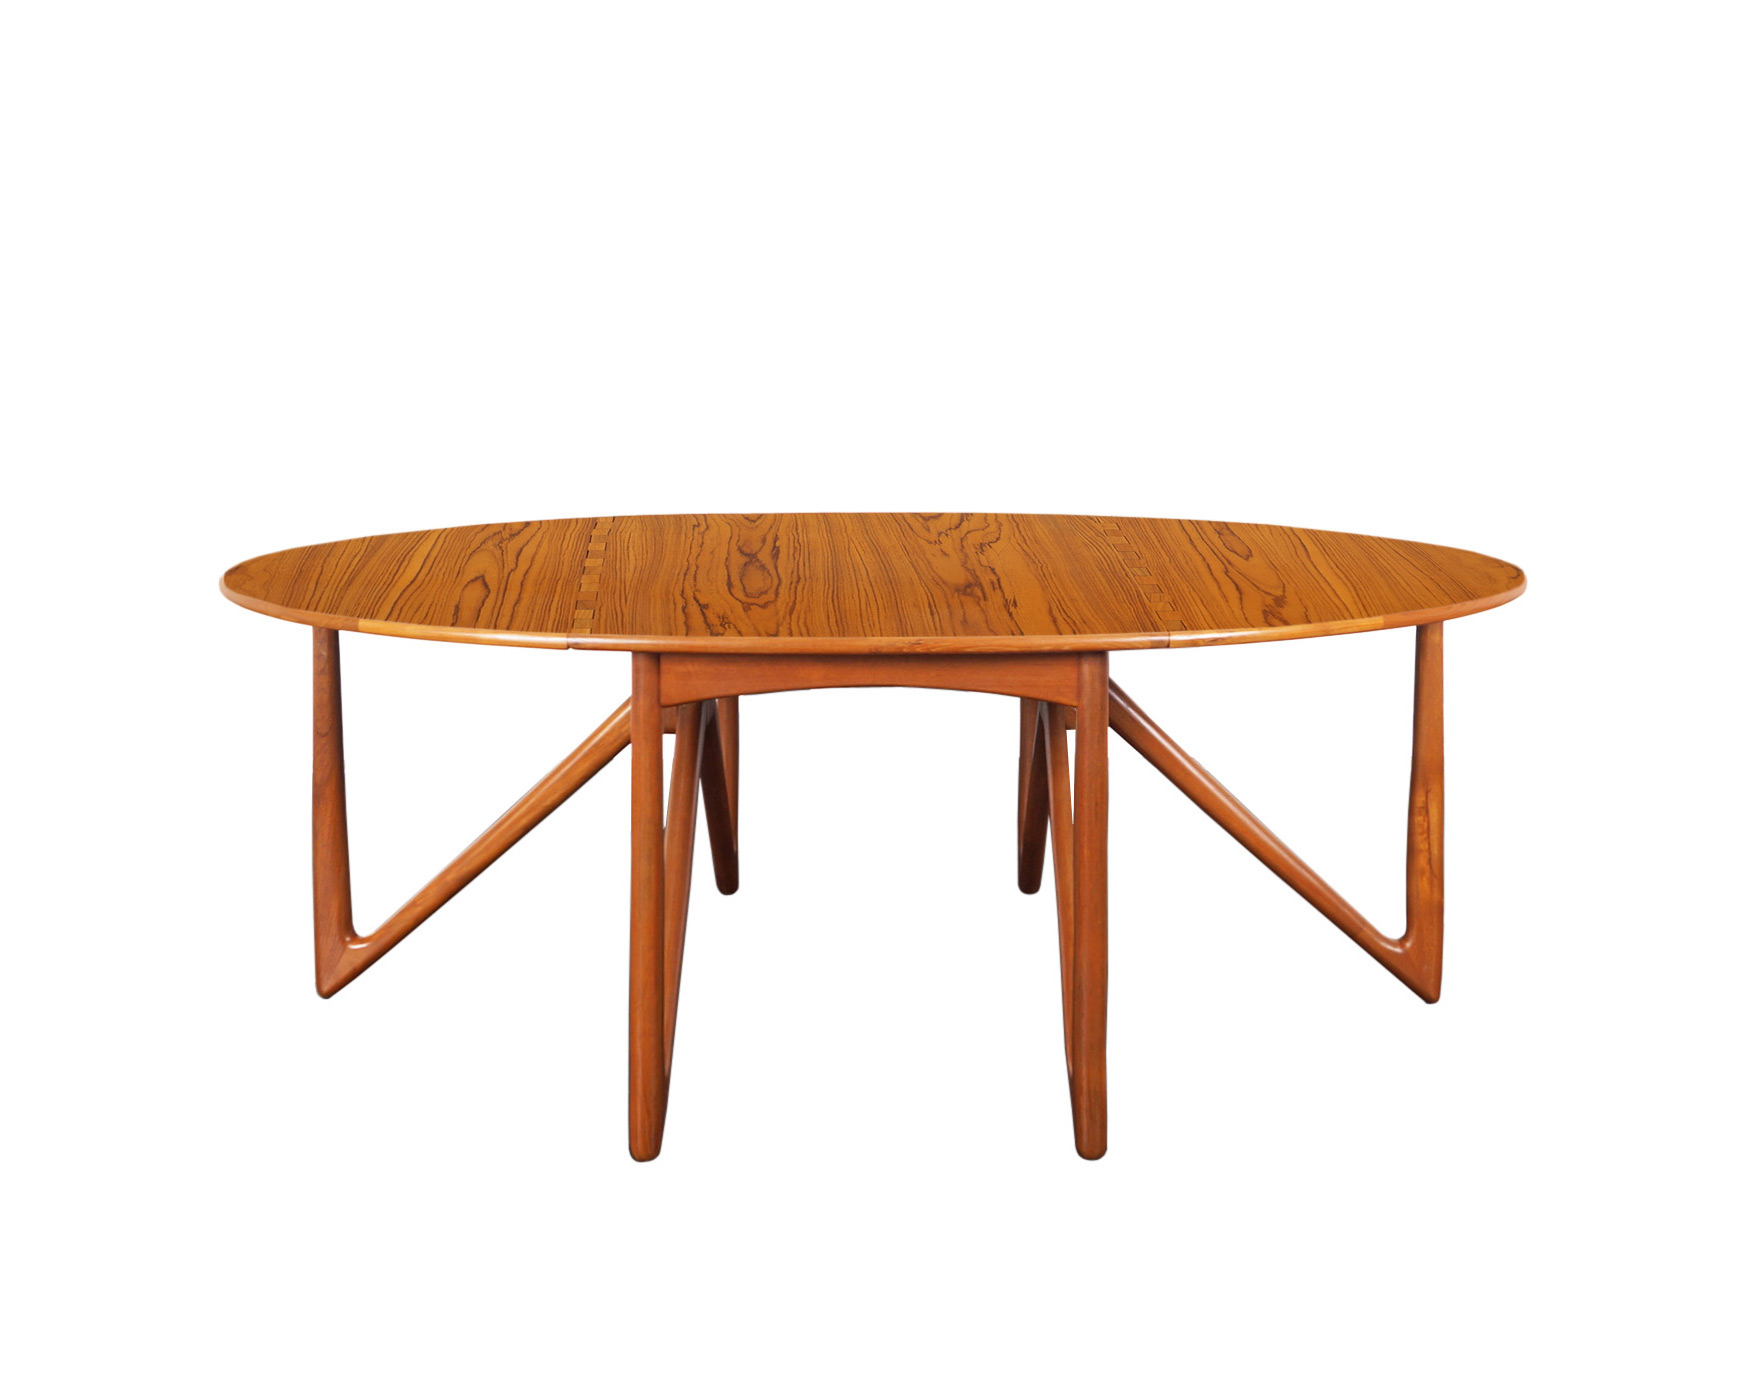 Danish Teak Gateleg Drop Leaf Dining Table by Niels Kofoed